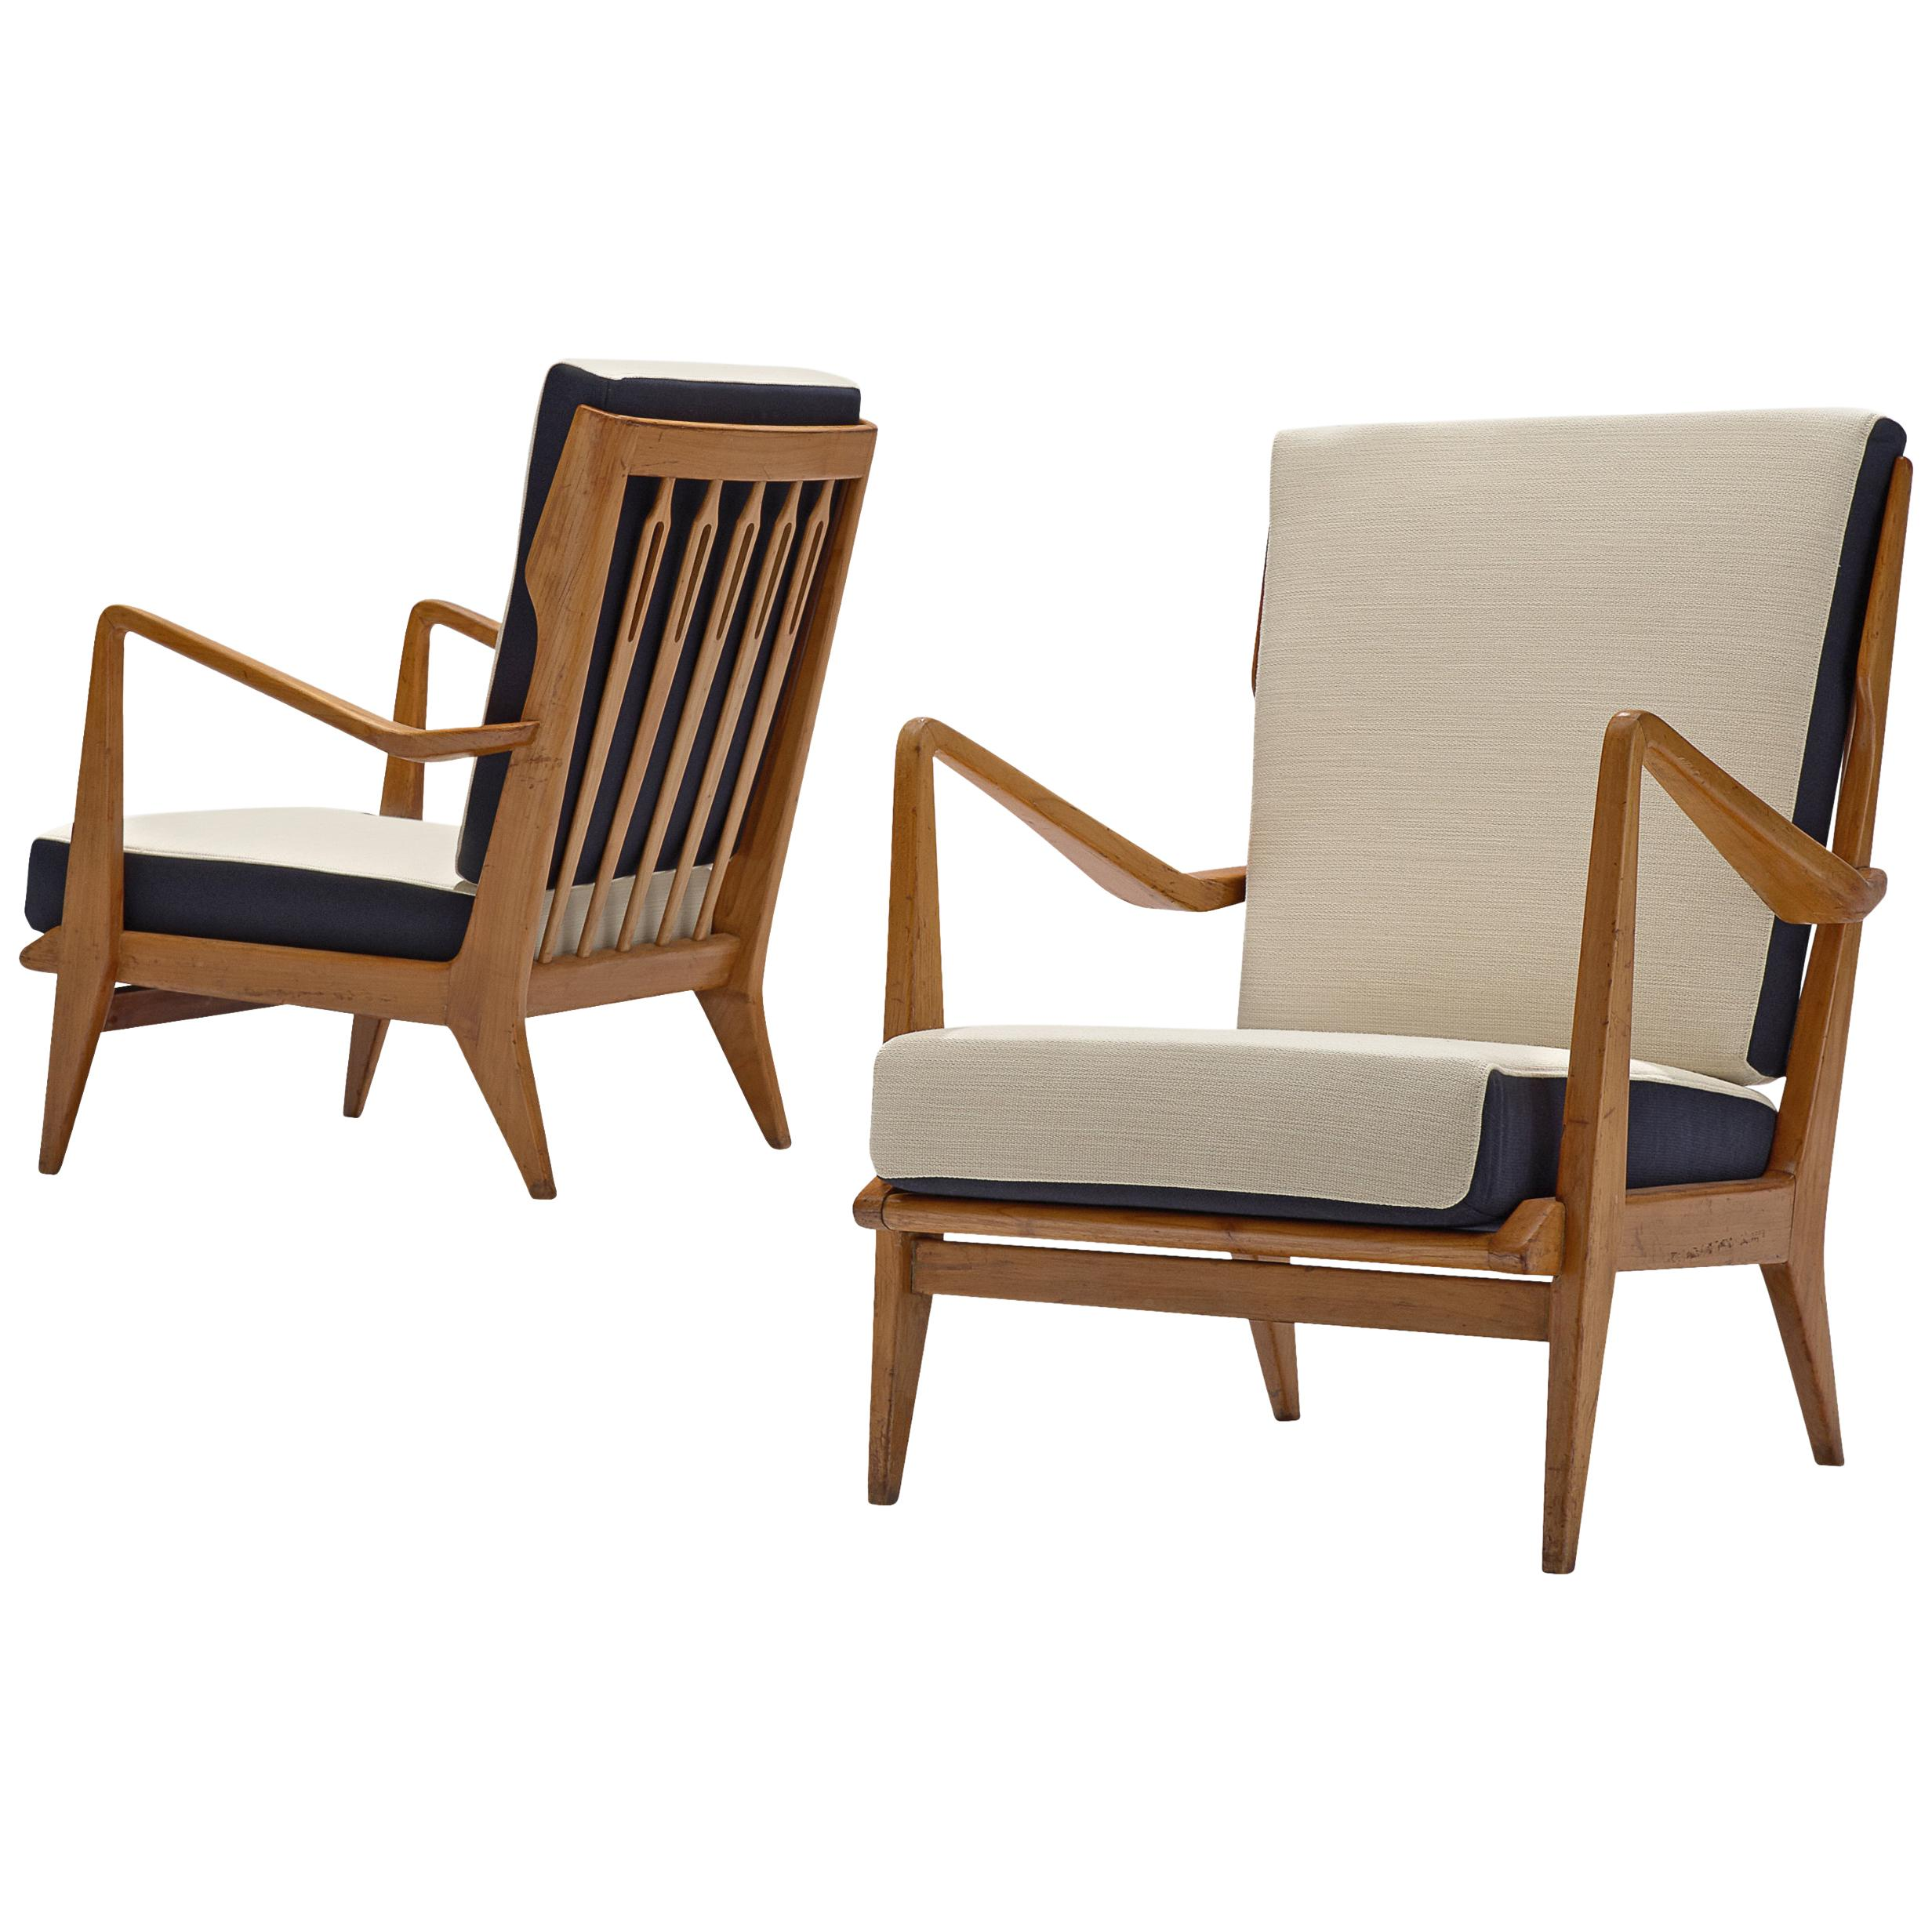 Gio Ponti for Cassina Pair of Armchairs Model 516 in Walnut